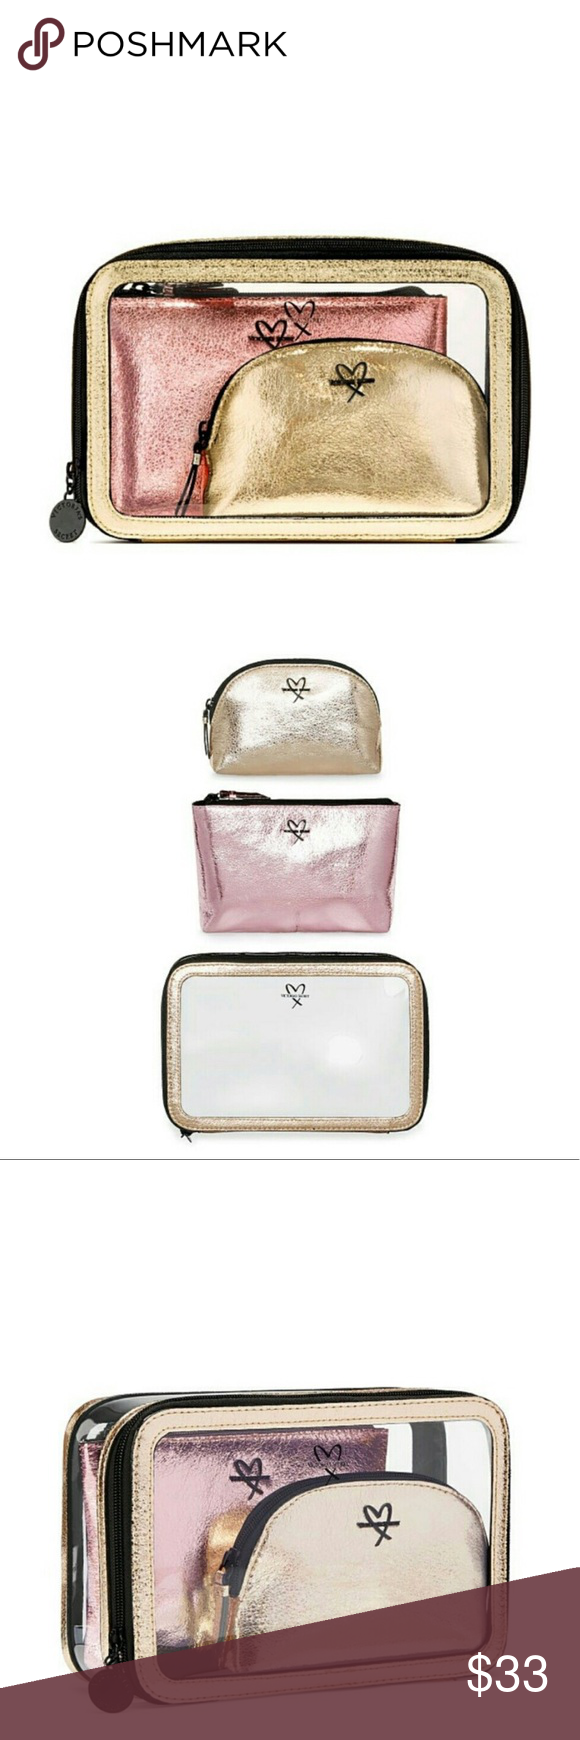 78248cda6f22 NWT Victoria s Secret Metallic Travel Makeup Bags Brand new Victoria s  Secret Metallic nested travel beauty makeup bag set. All 3 are in perfect  condition!